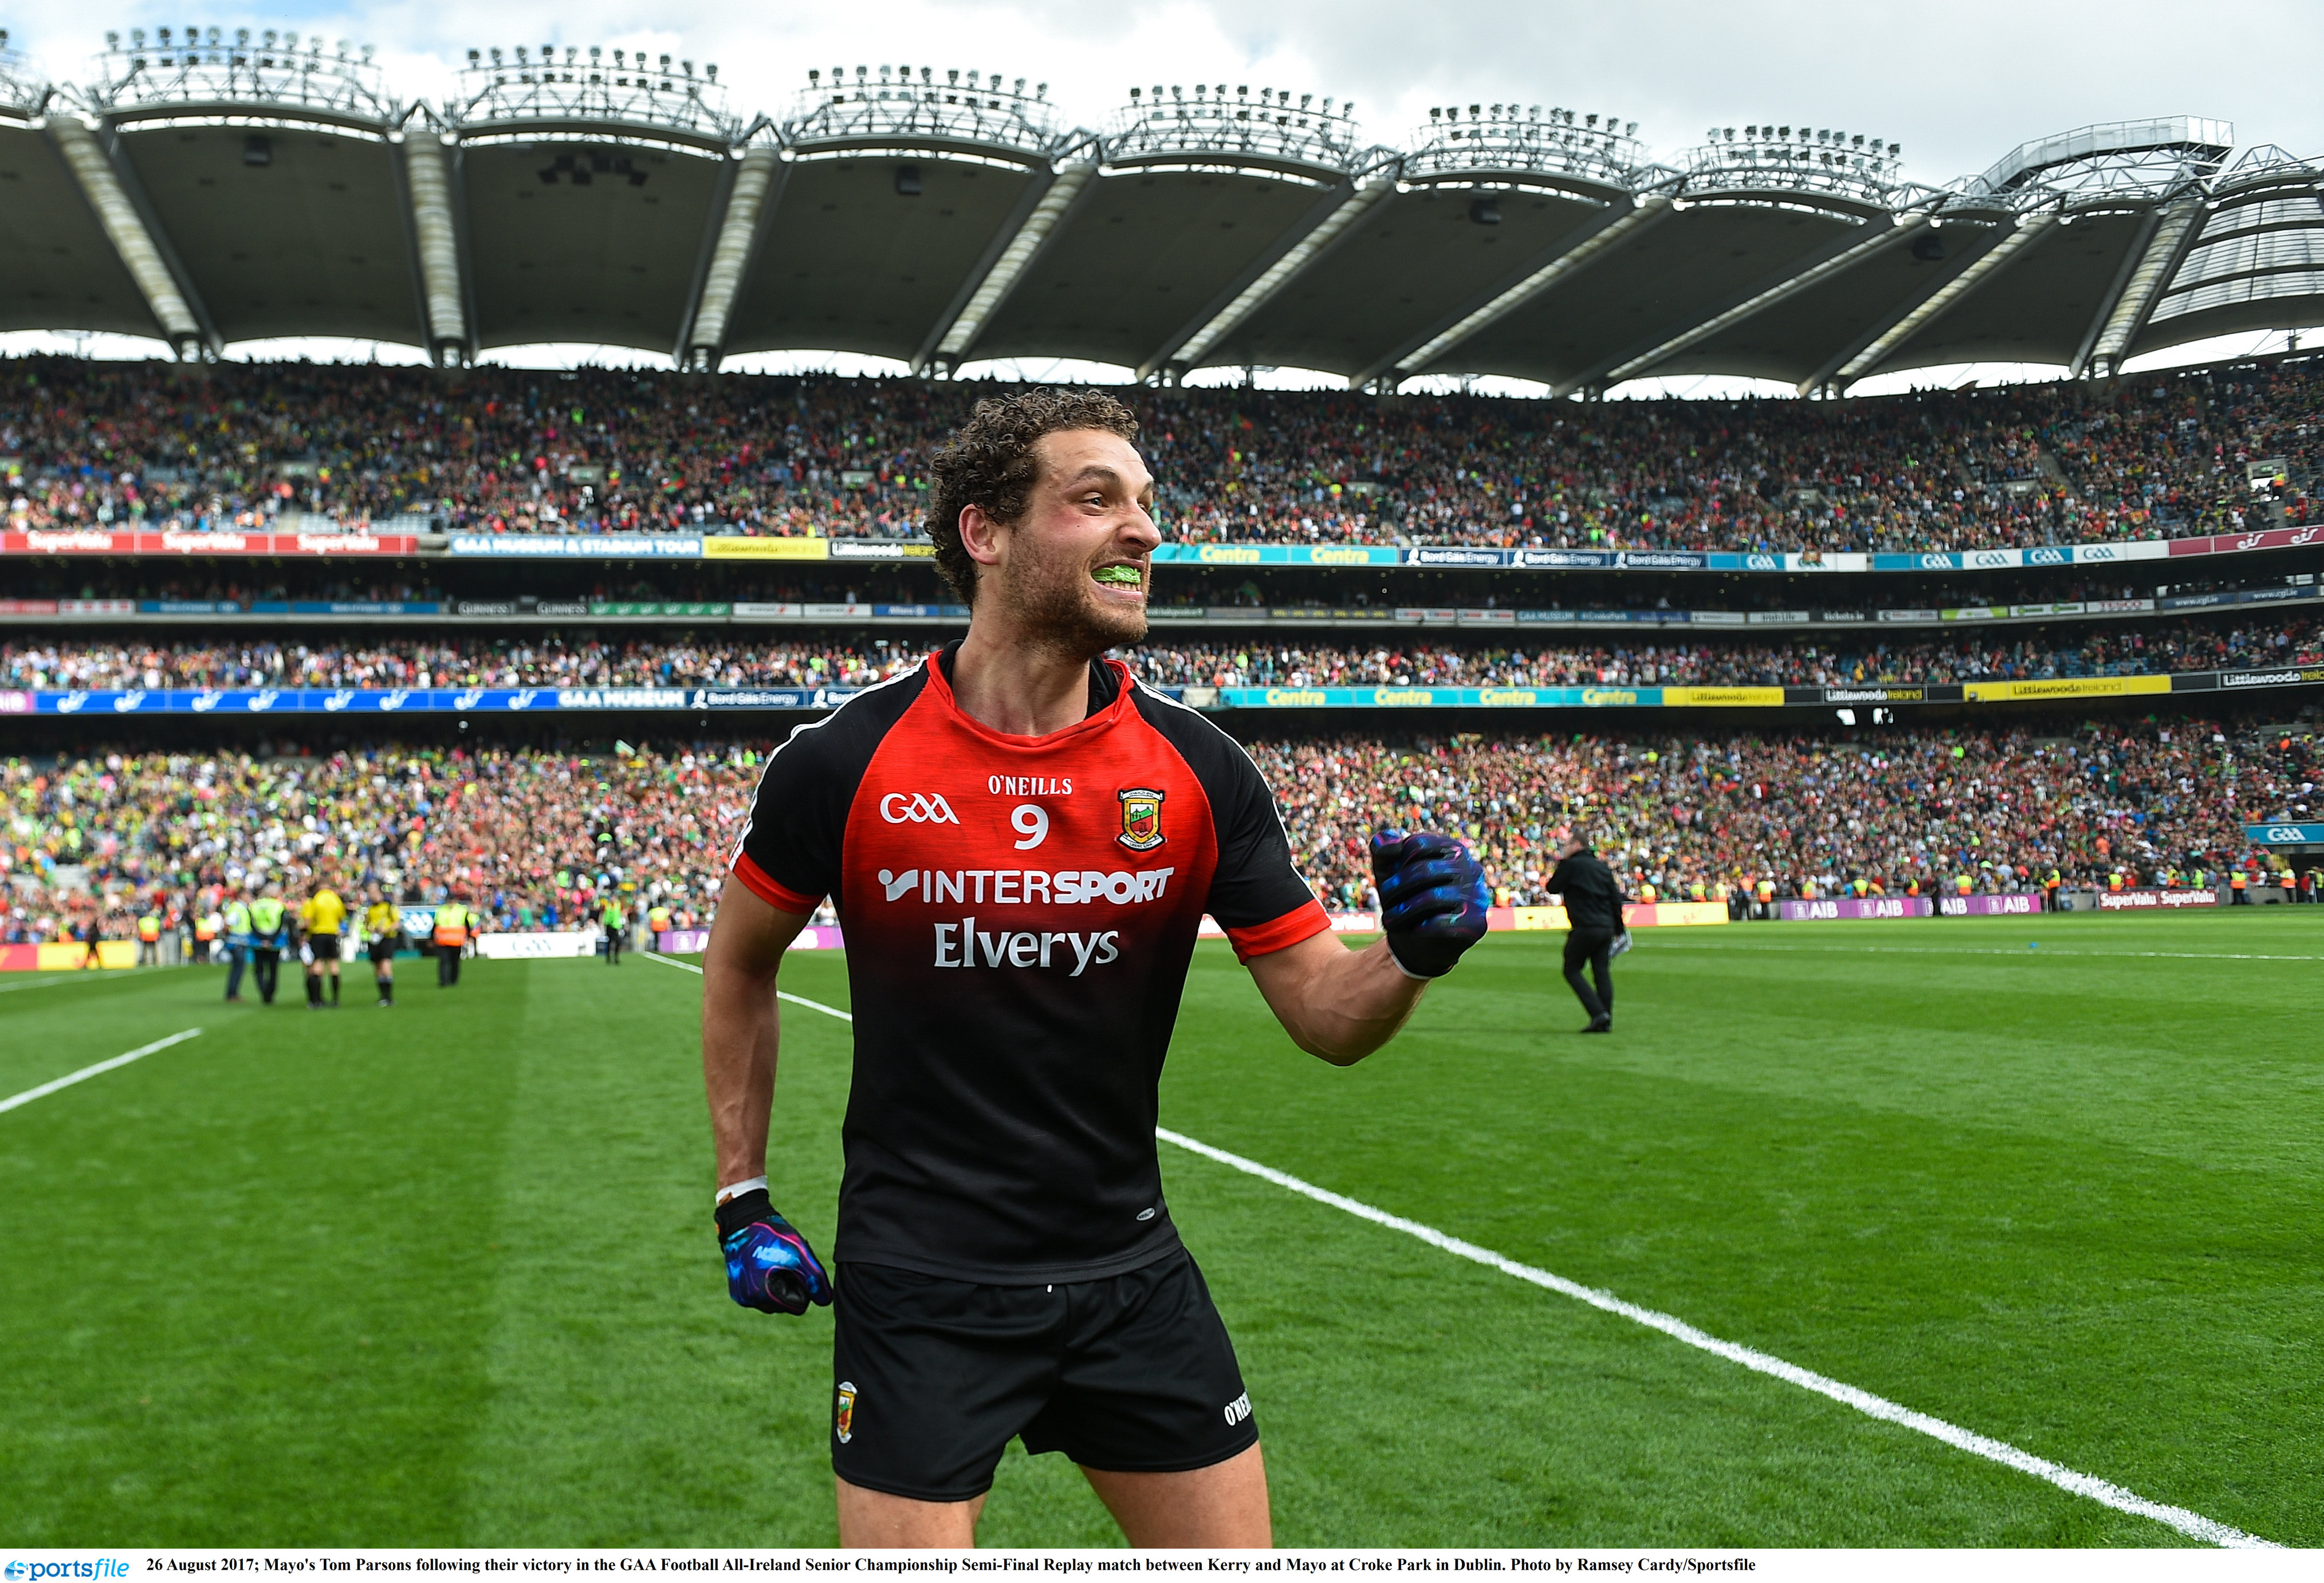 Mayo is well-served by plane, train, bus and road networks